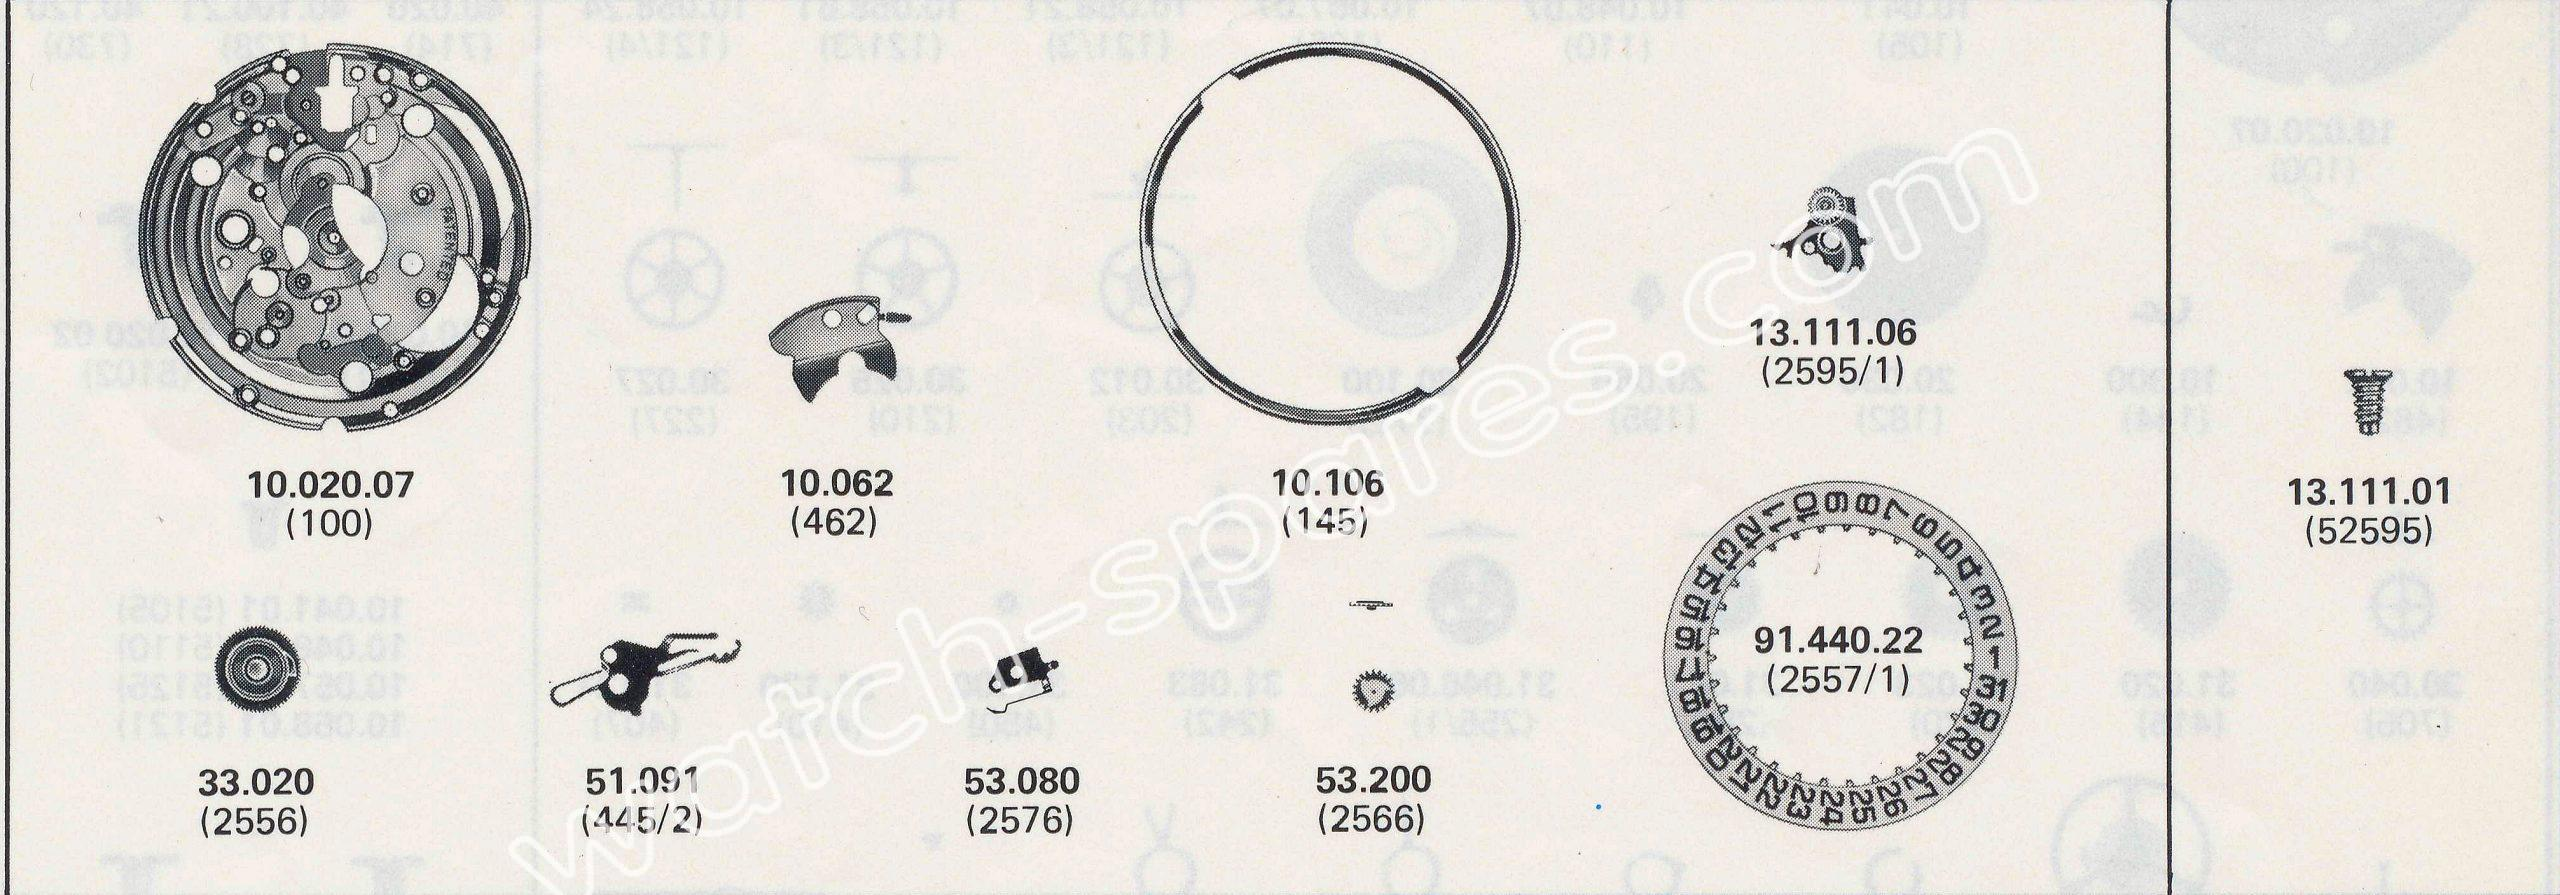 ETA 2824.1 watch date spare parts